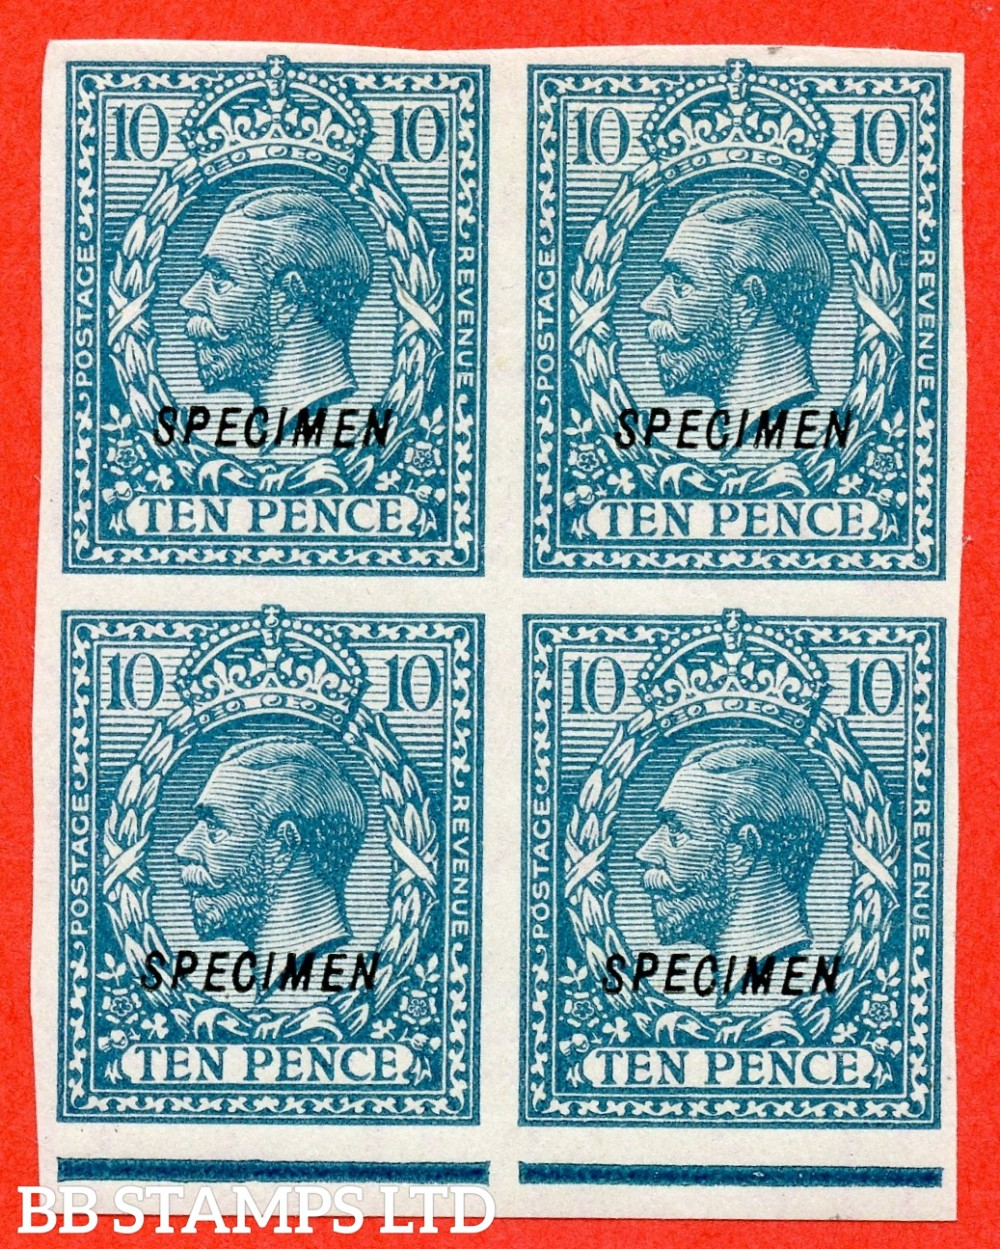 SG. 428 s. N44 (1) t. 10d Turquoise - Blue. A fine lightly mounted bottom marginal block of 4 overprinted SPECIMEN type 23.